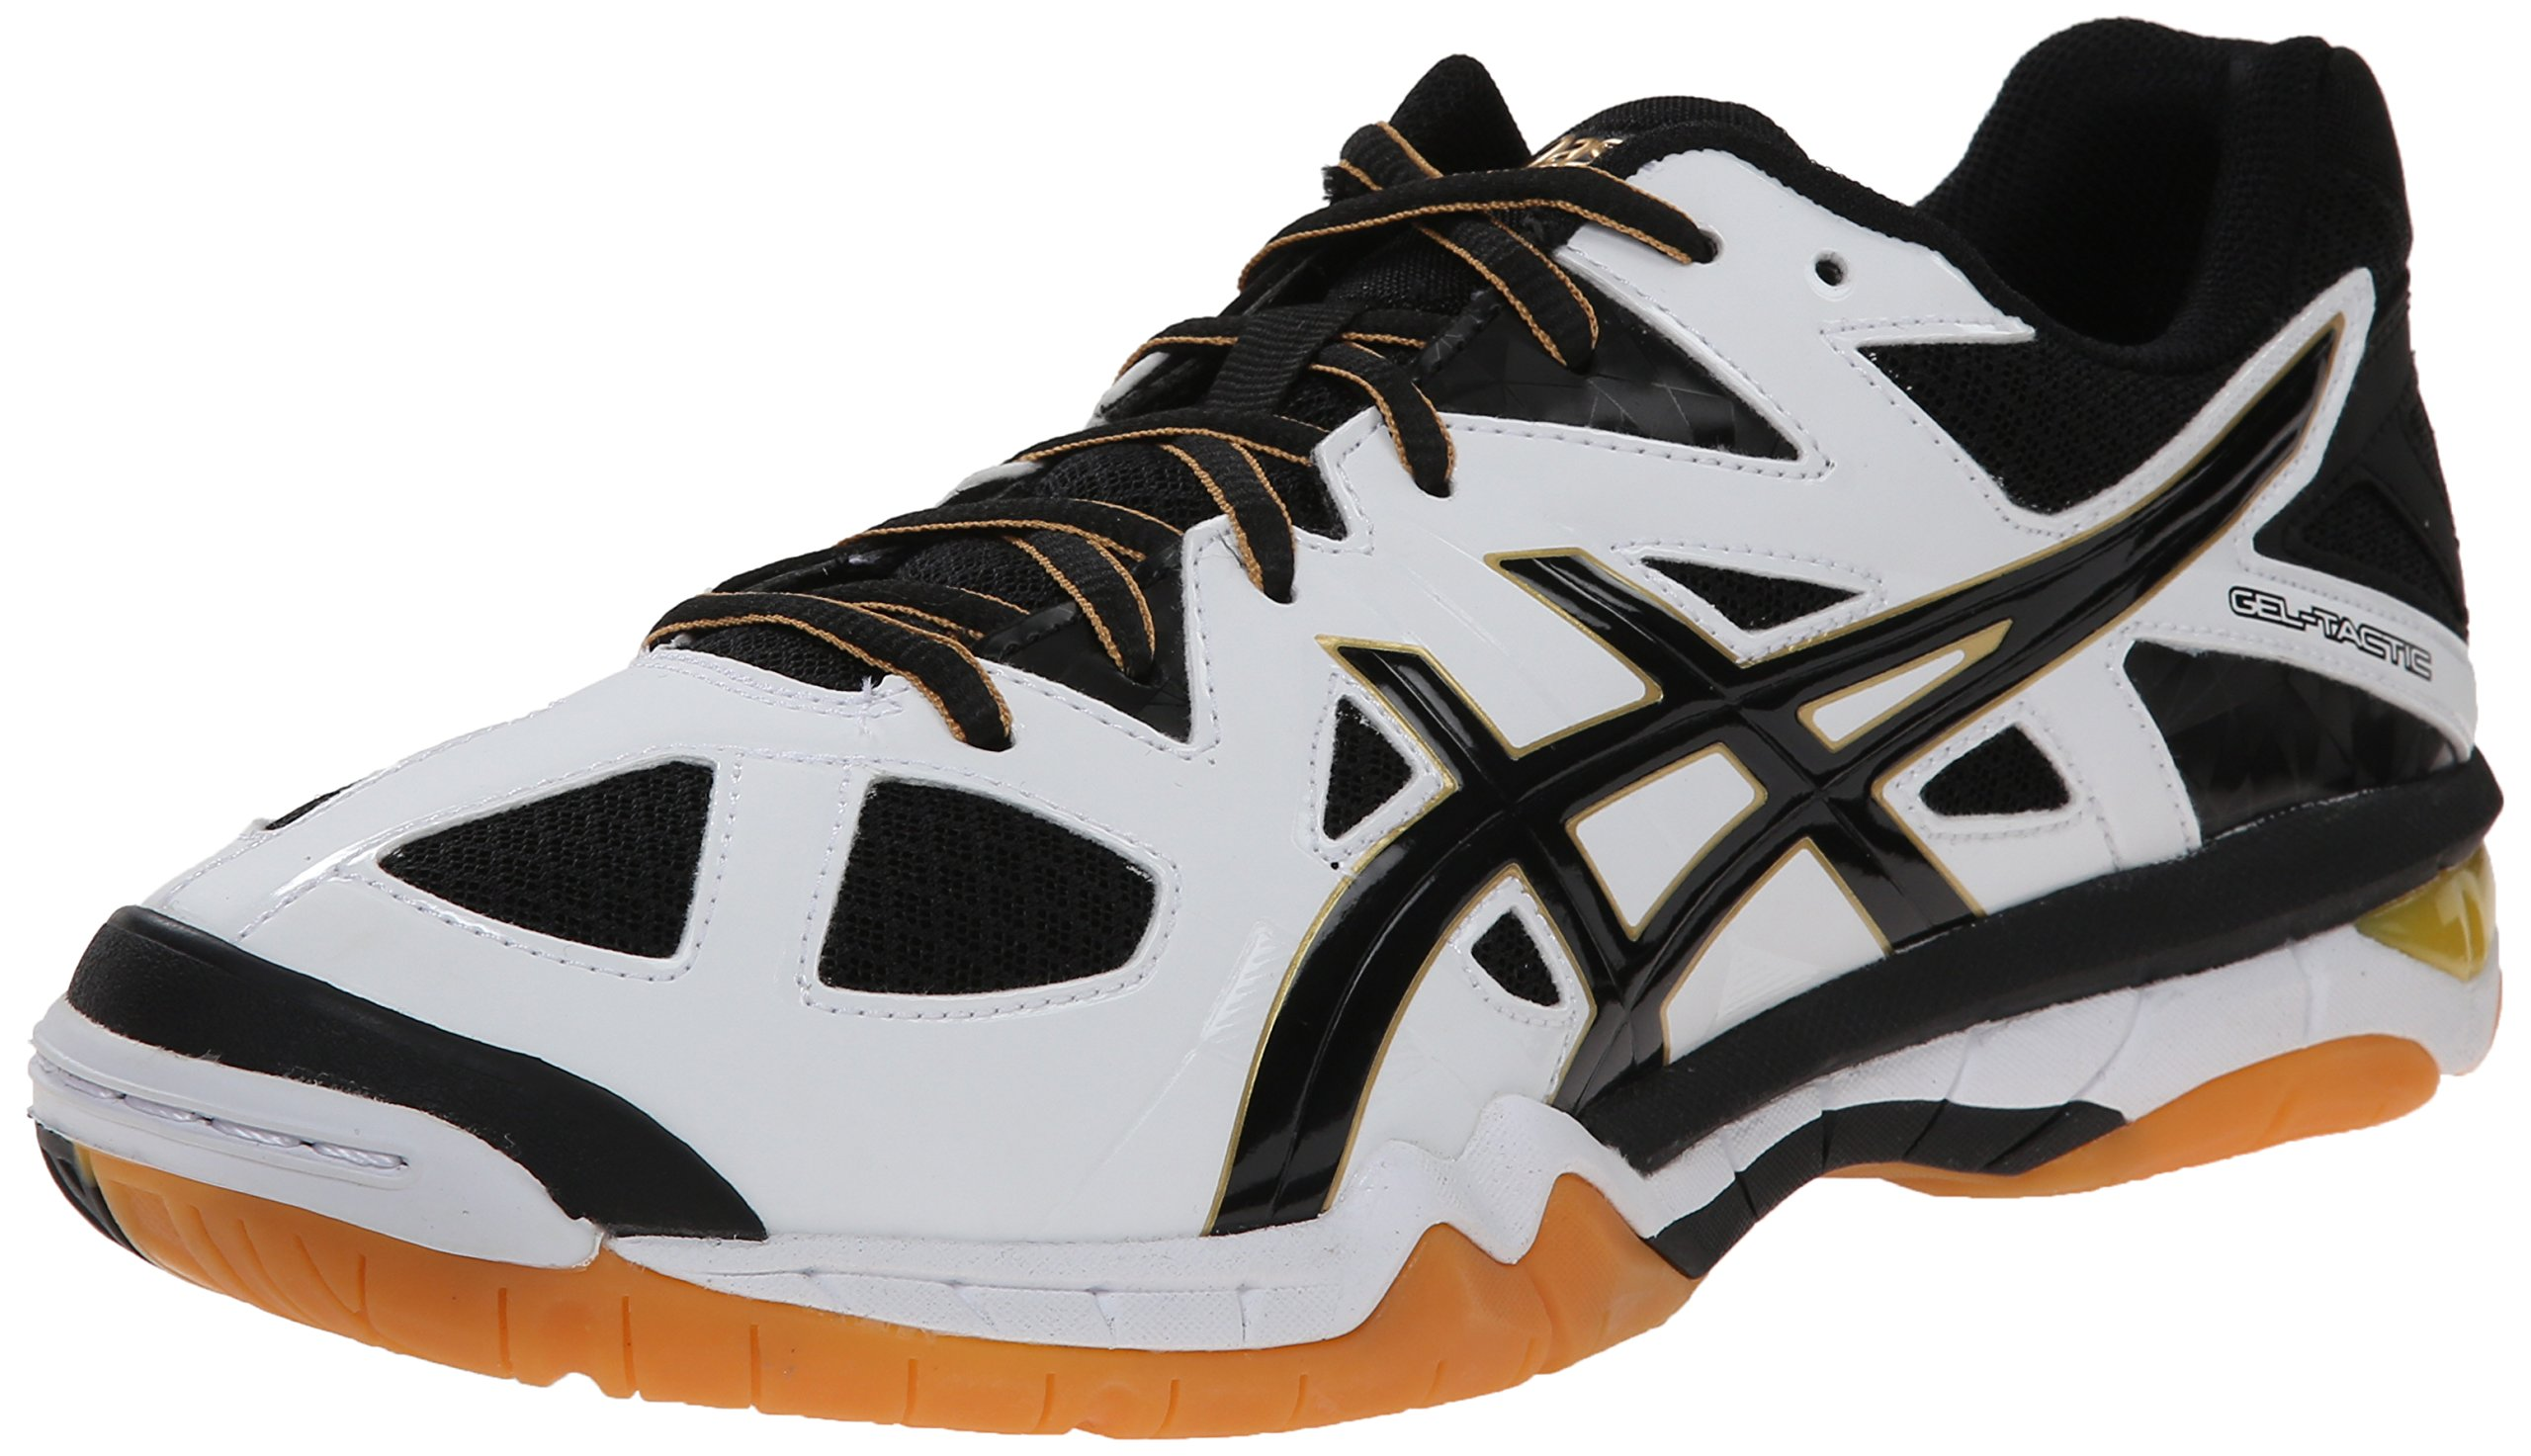 ASICS Men's Gel-Tactic Volleyball Shoe, White/Black/Pale Gold, 6.5 M US